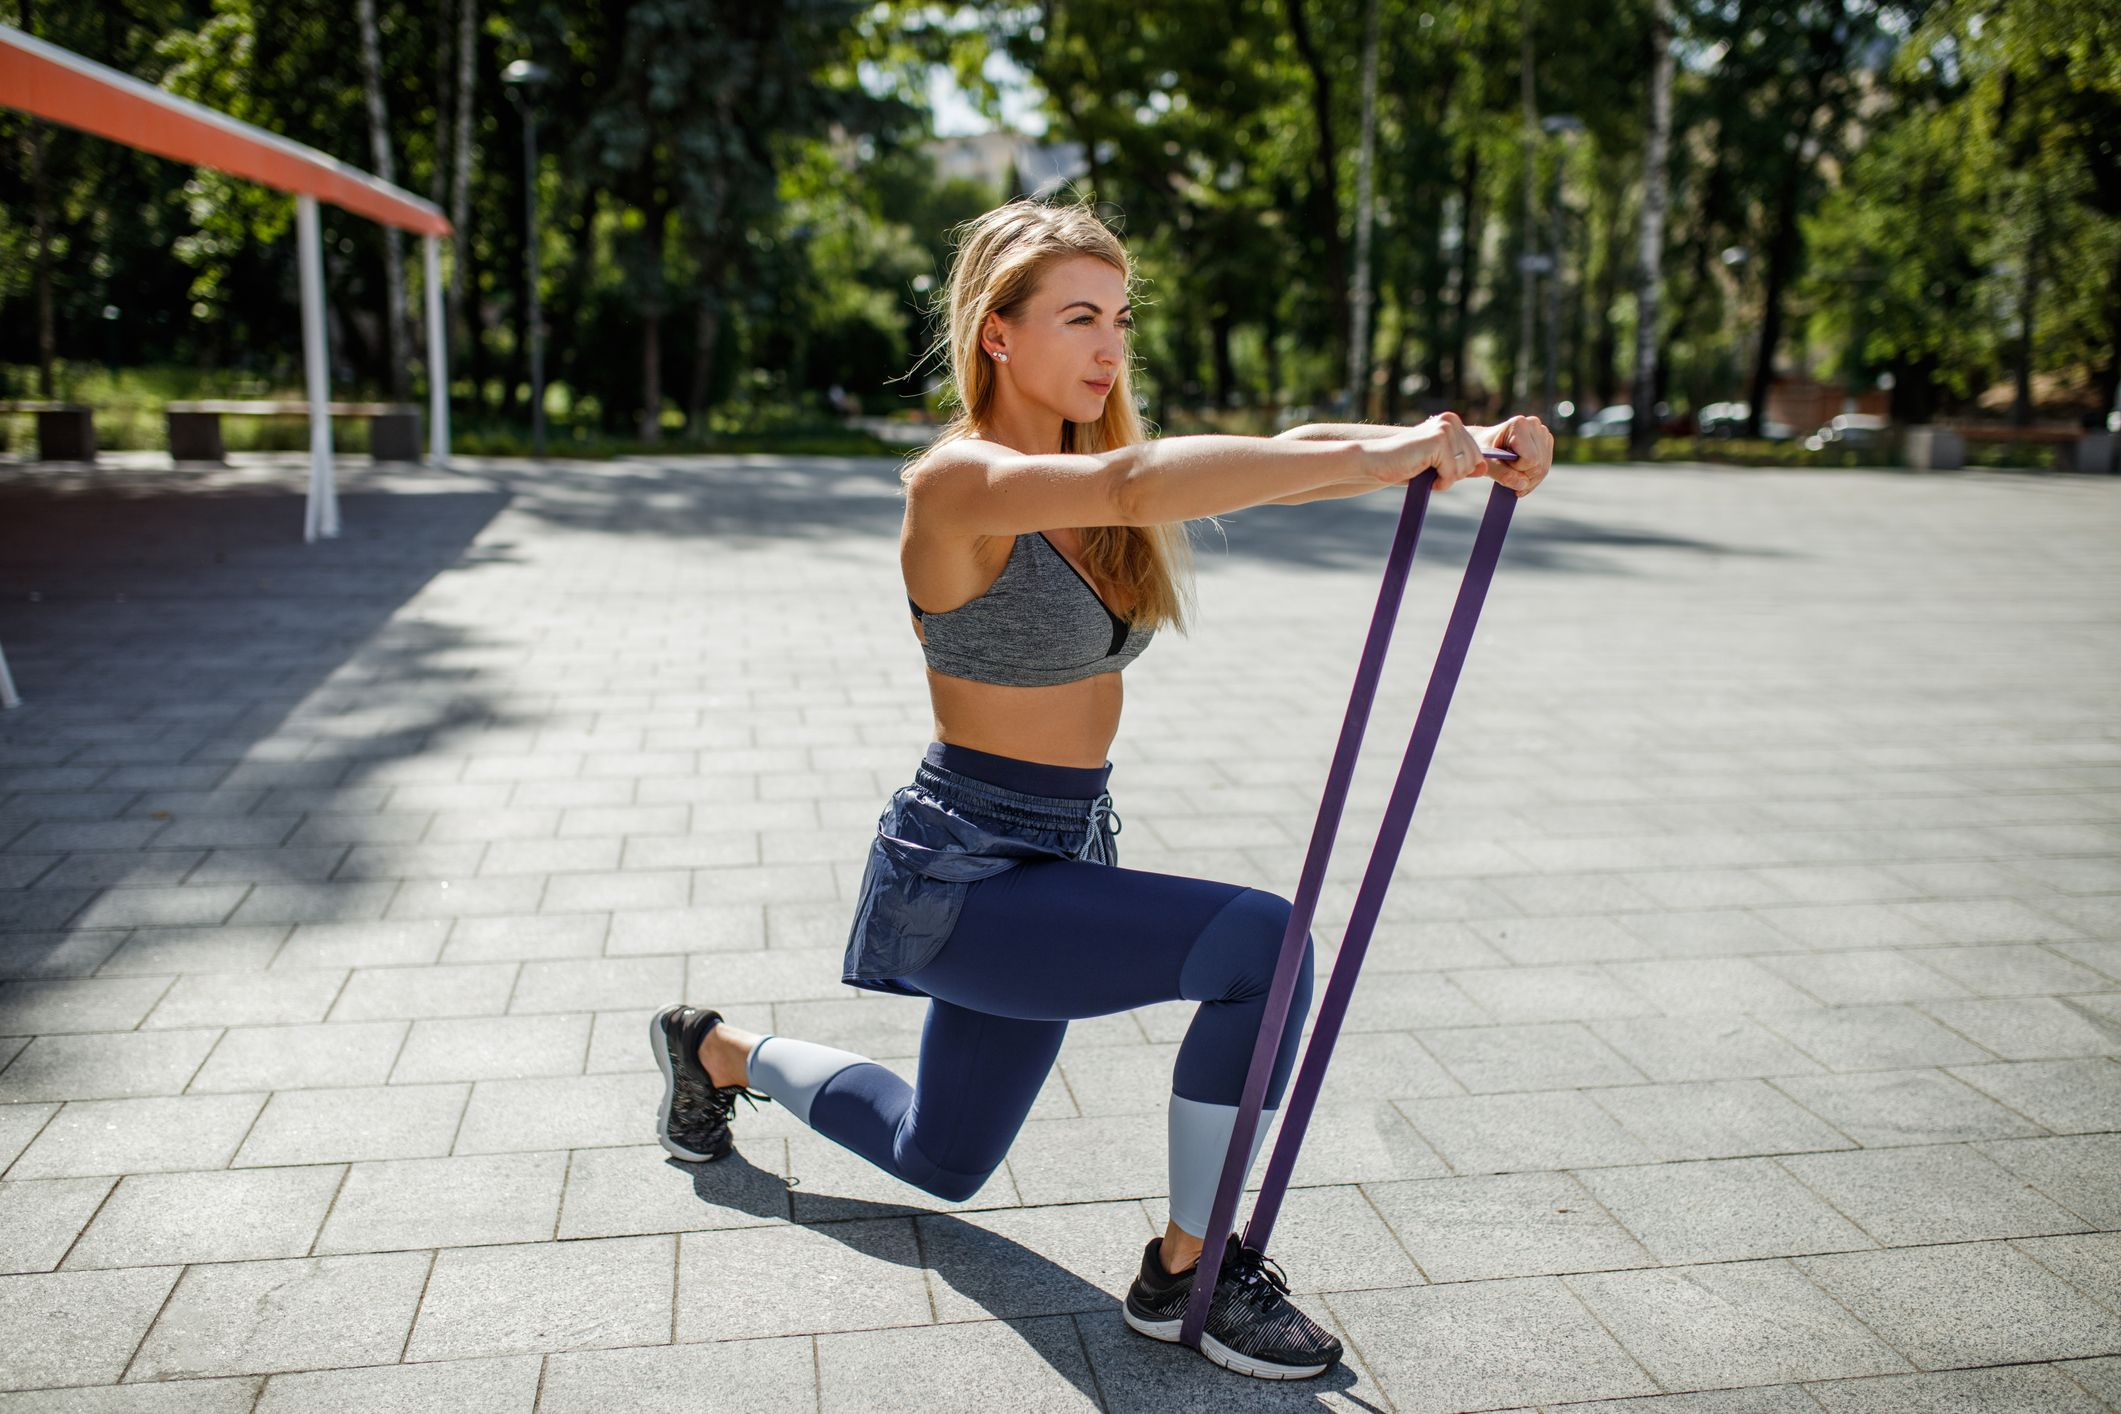 10 Best Resistance Bands to Buy in 2019, According to Personal Trainers